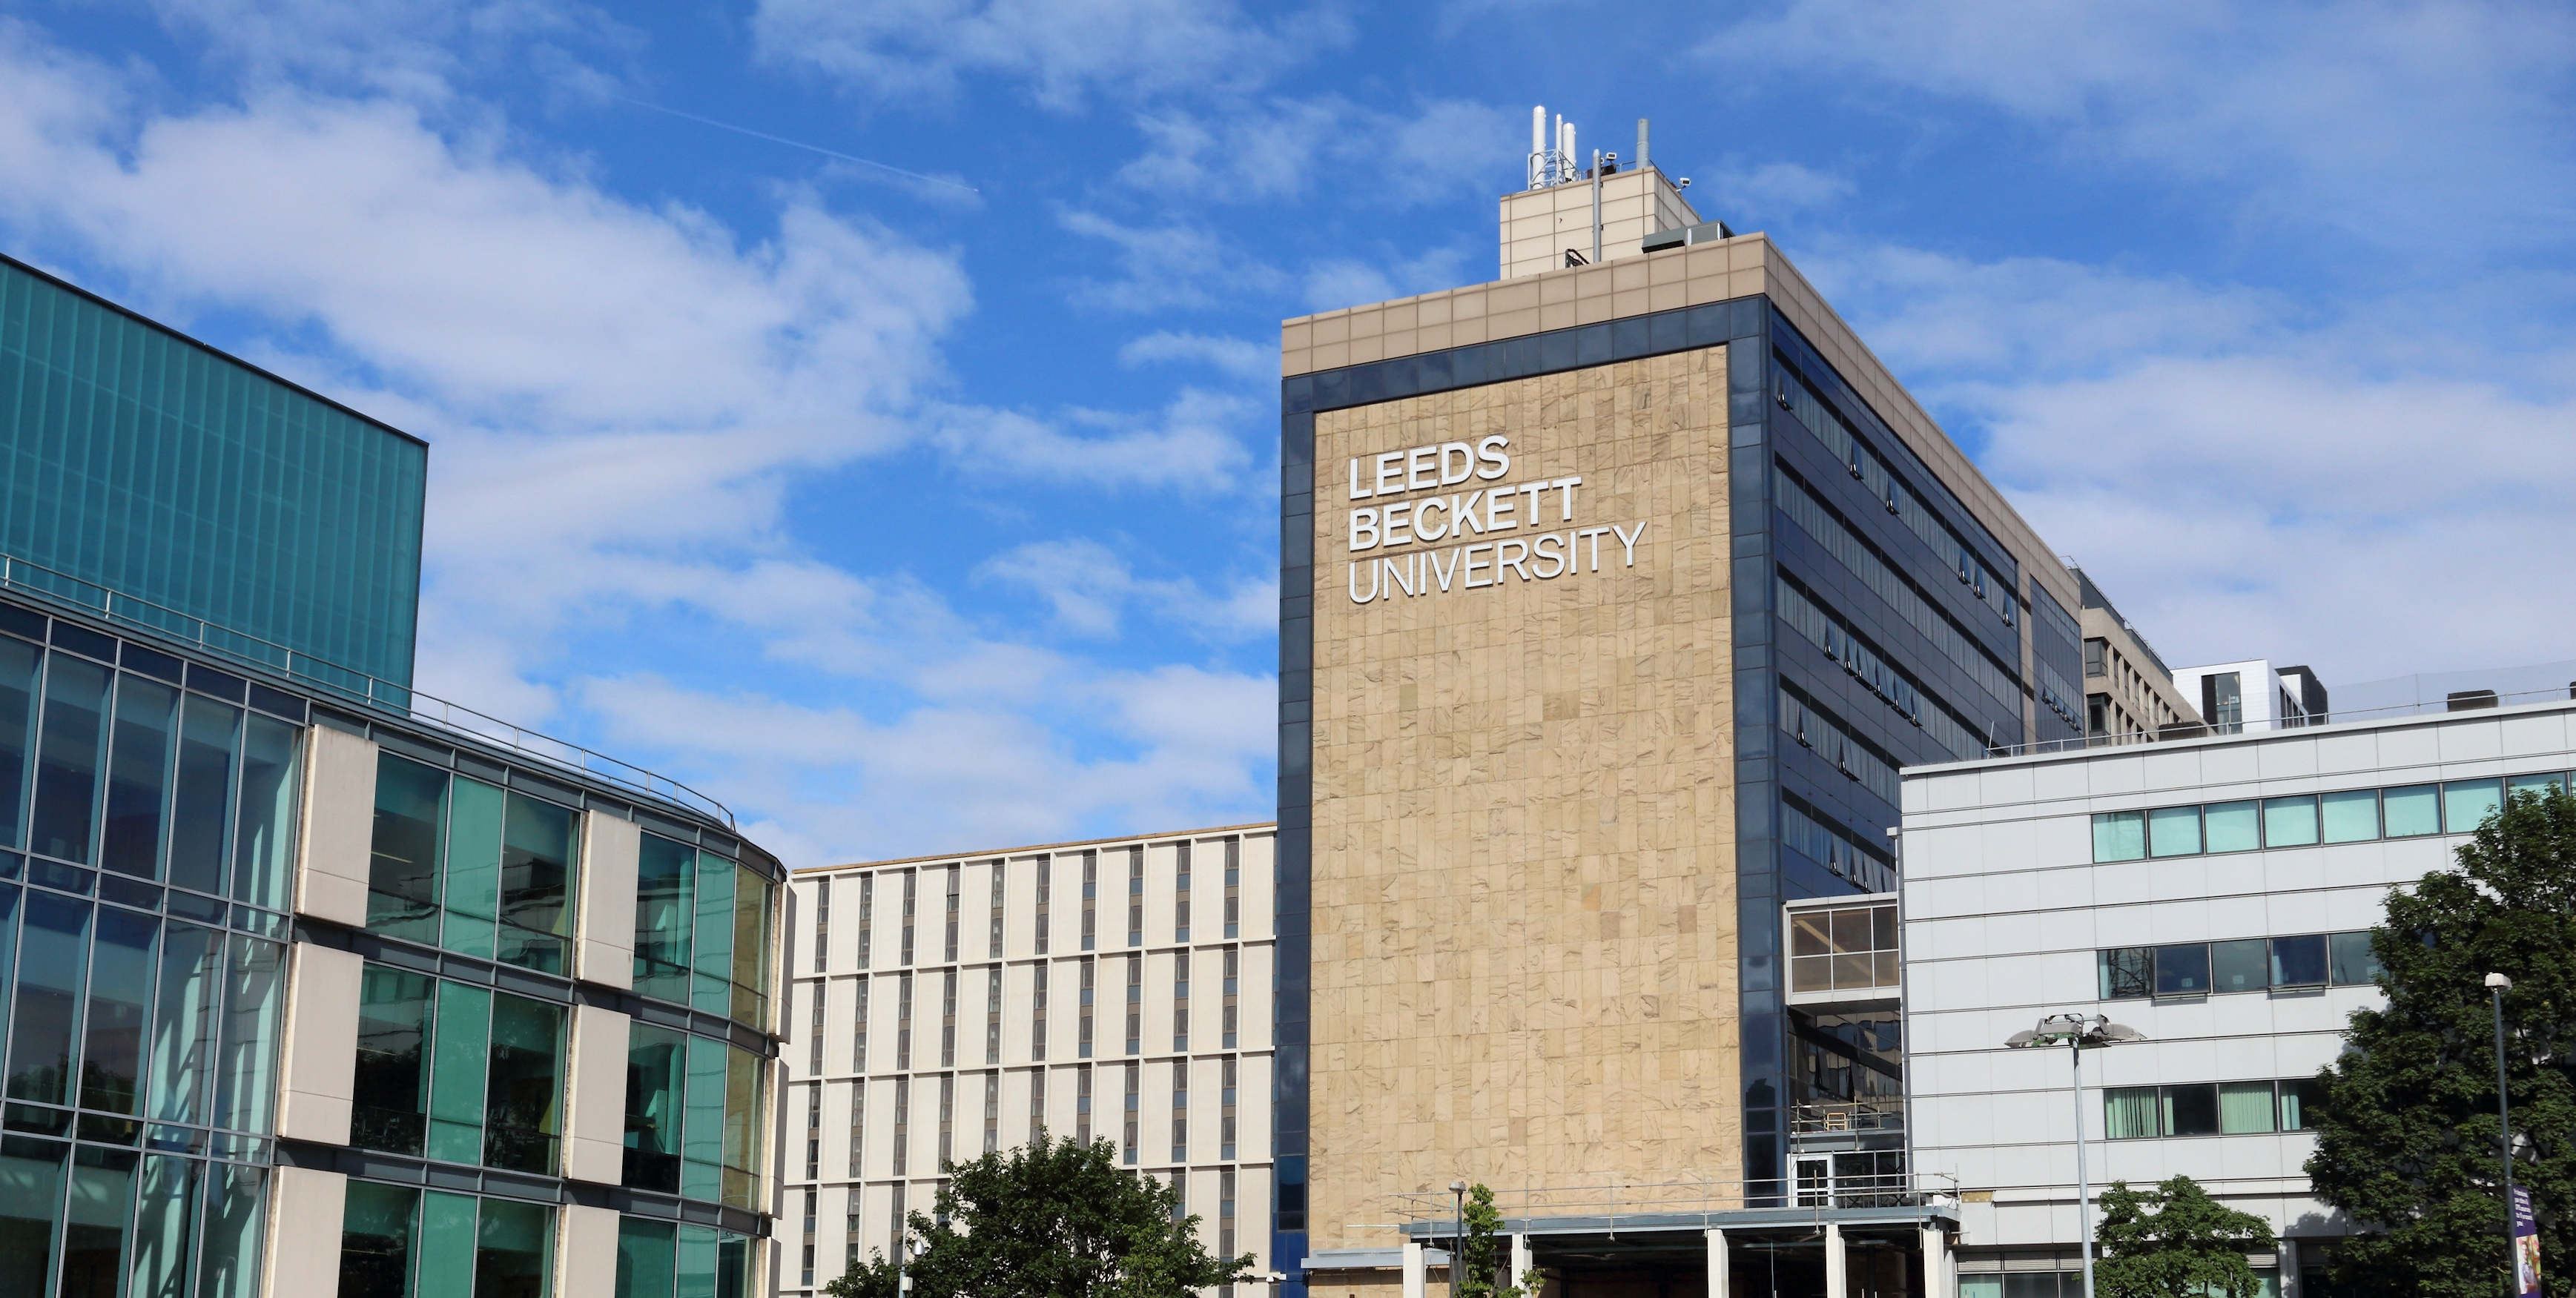 Leeds Beckett University embrace digital surveying as they prepare for expansion